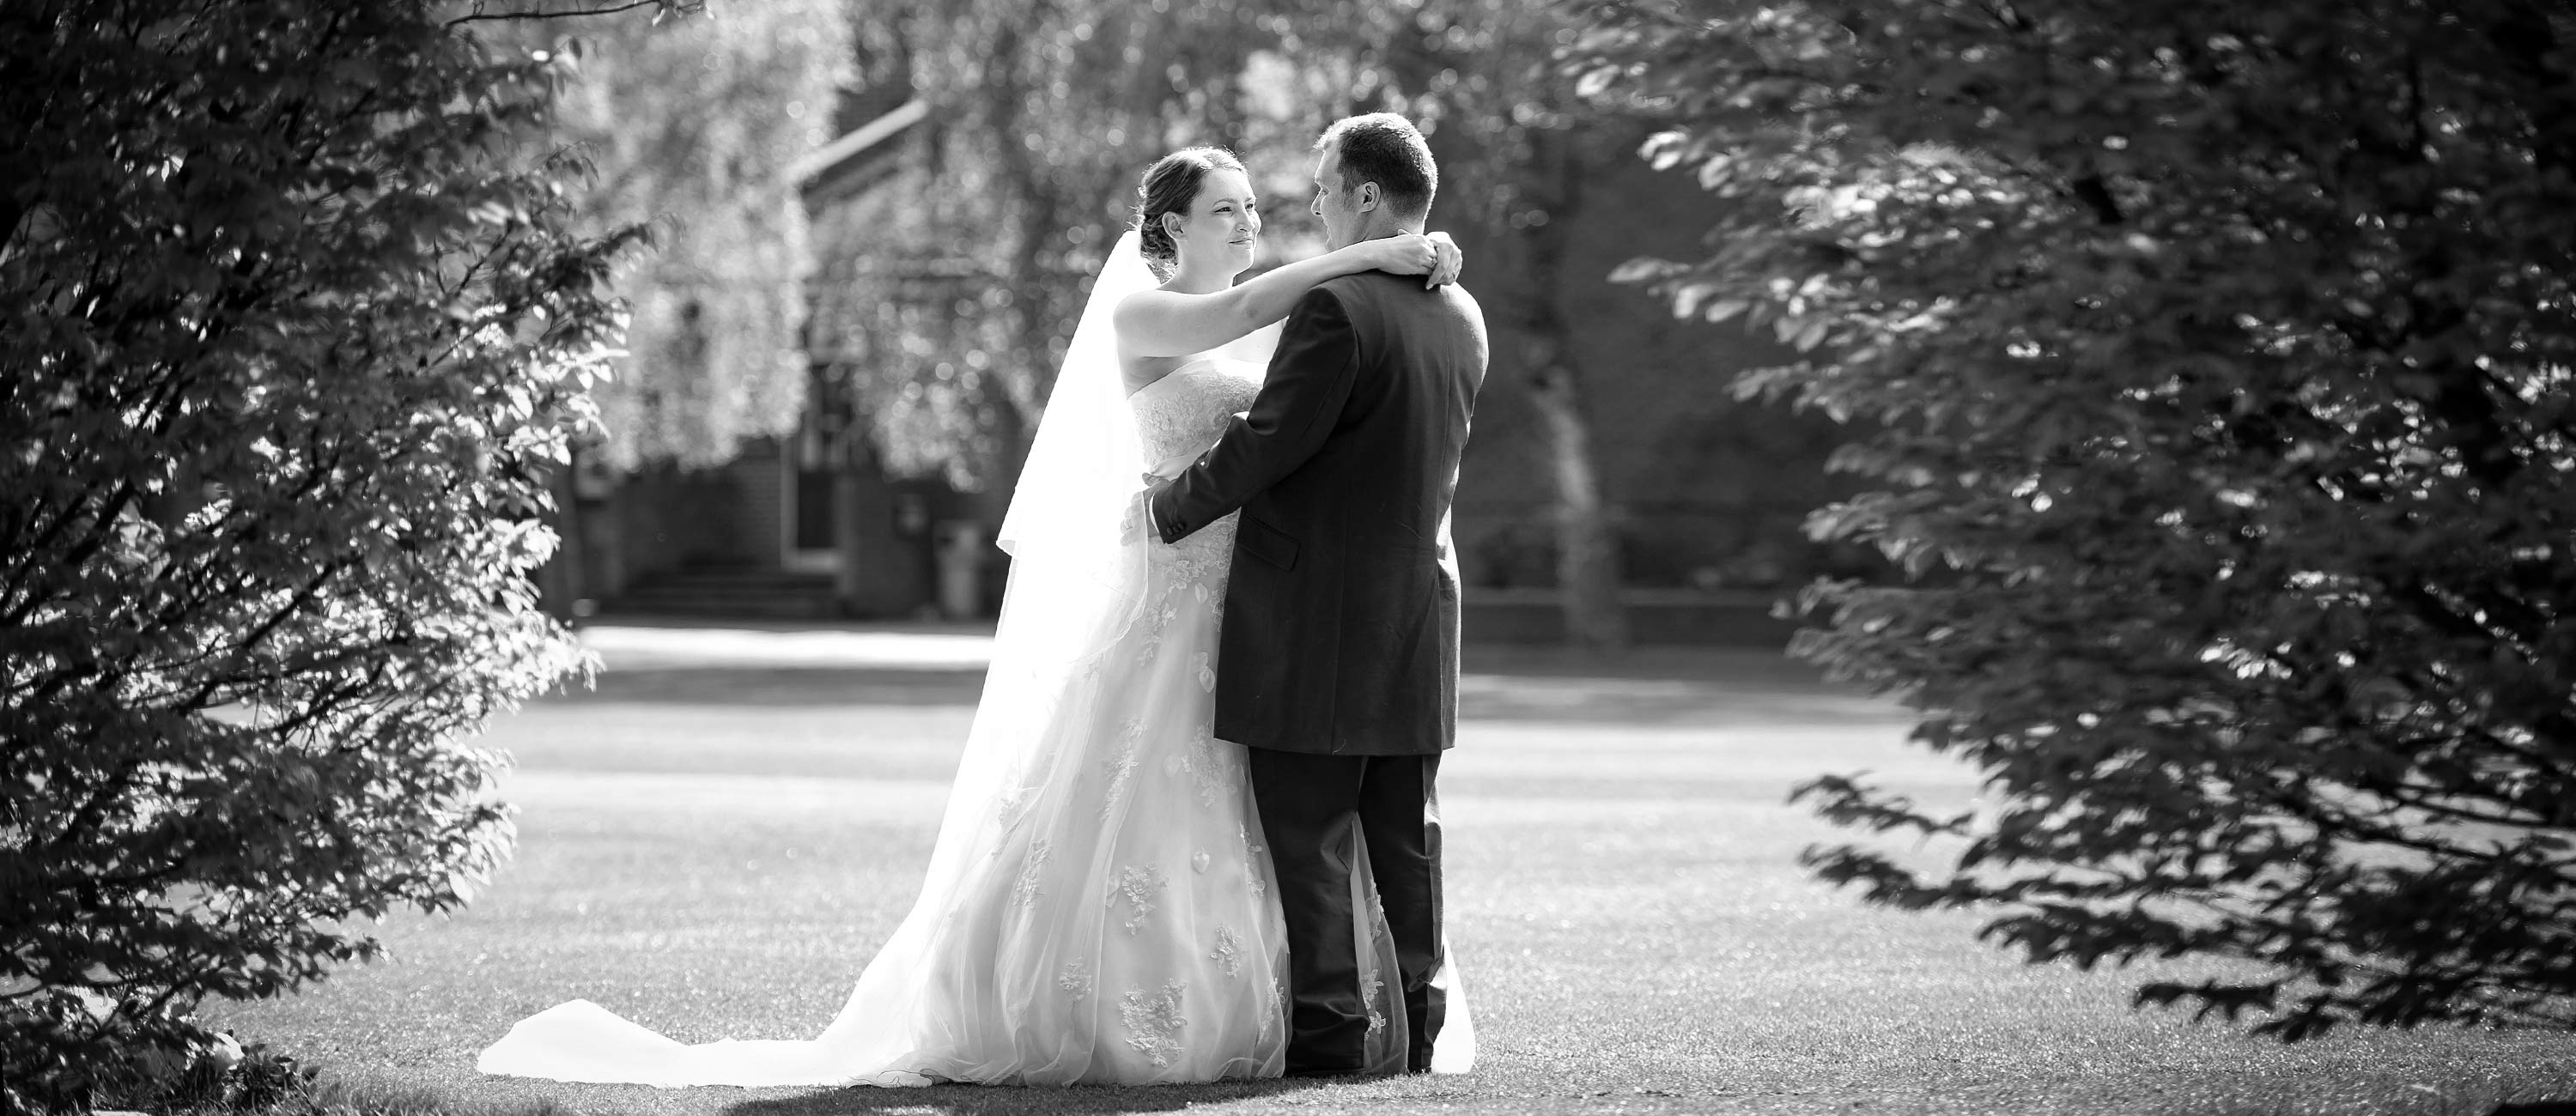 recommended wedding photographer bedford boys school